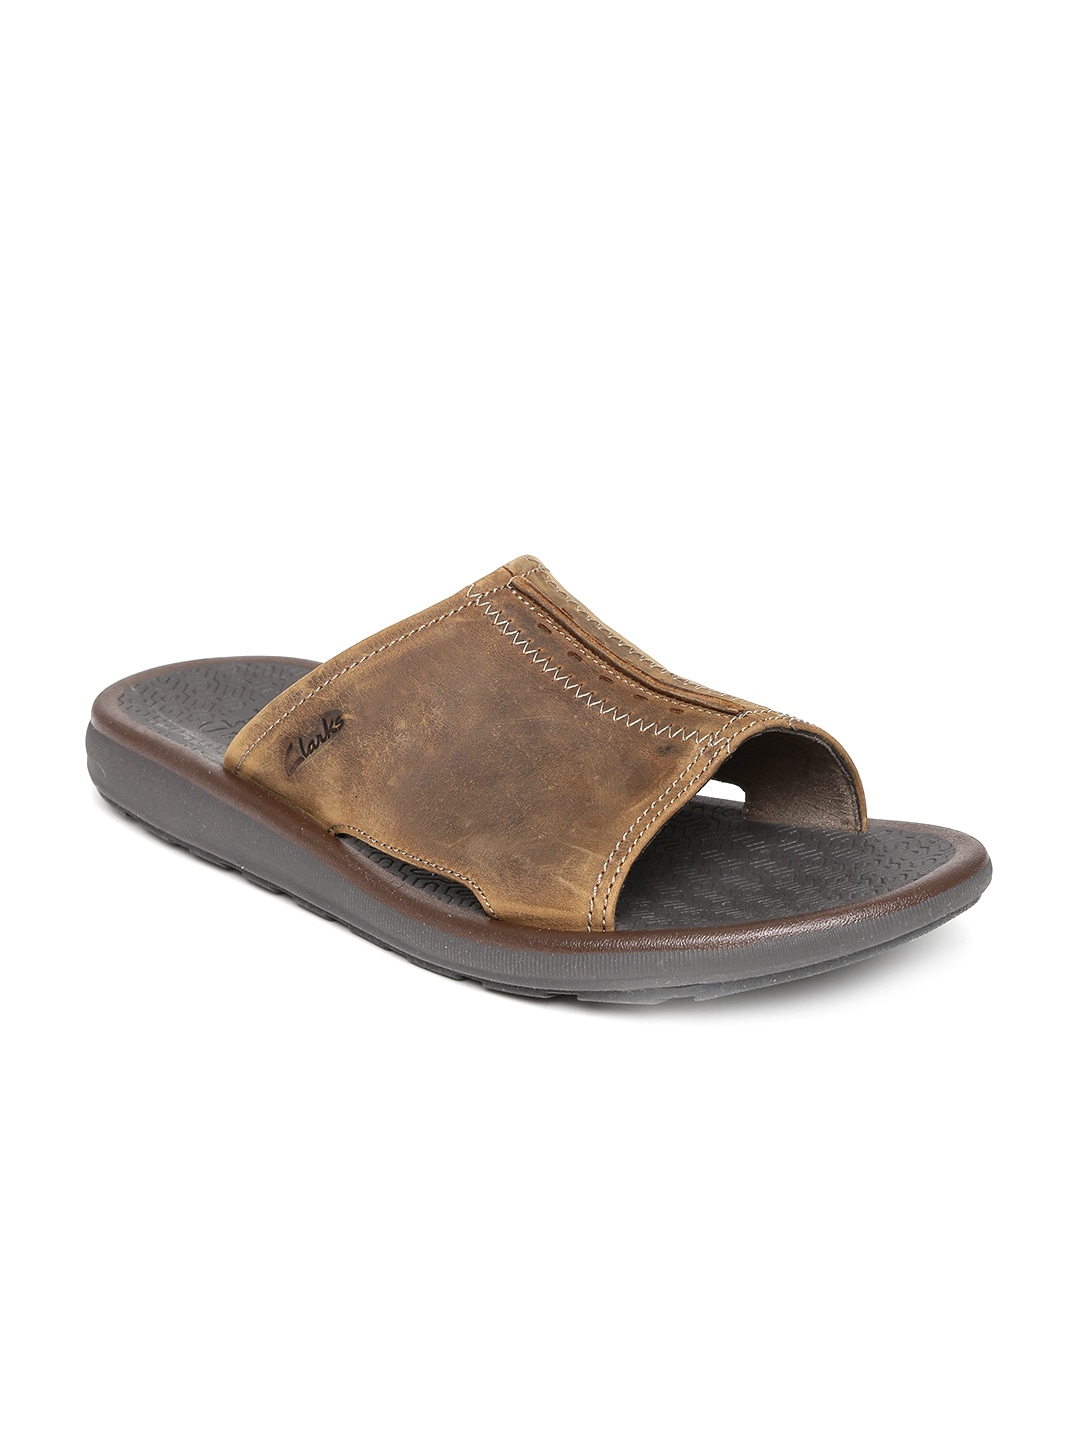 4c611a18866 CLARKS - Exclusive Clarks Shoes Online Store in India - Myntra